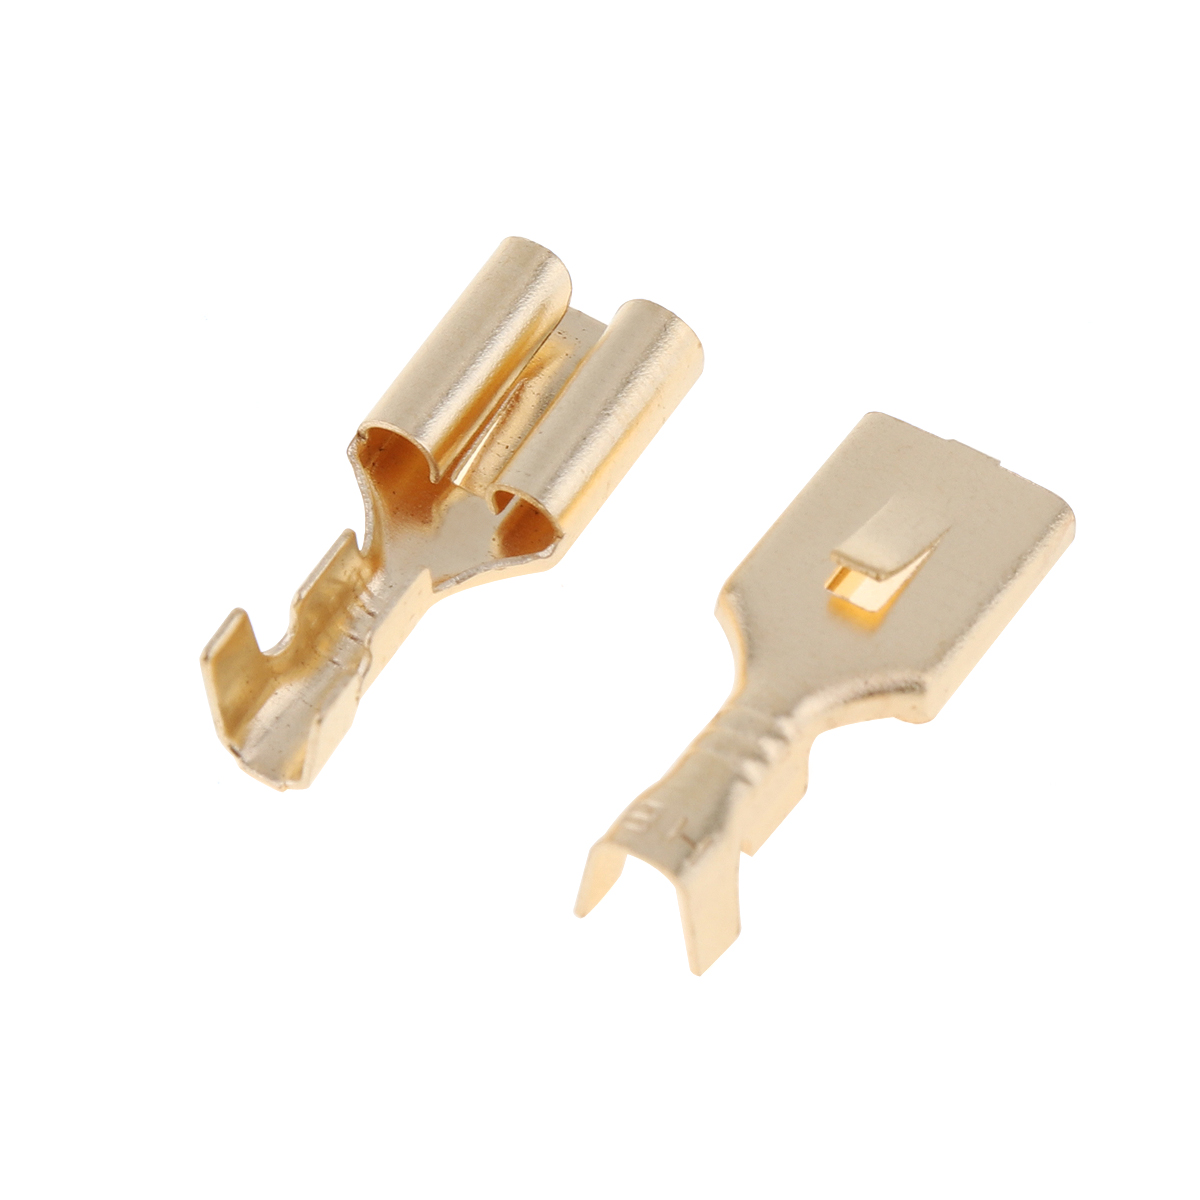 6-3mm-Car-Vehicle-5-Pin-Relay-Socket-Connector-Holder-with-5pcs-Copper-Terminal thumbnail 3